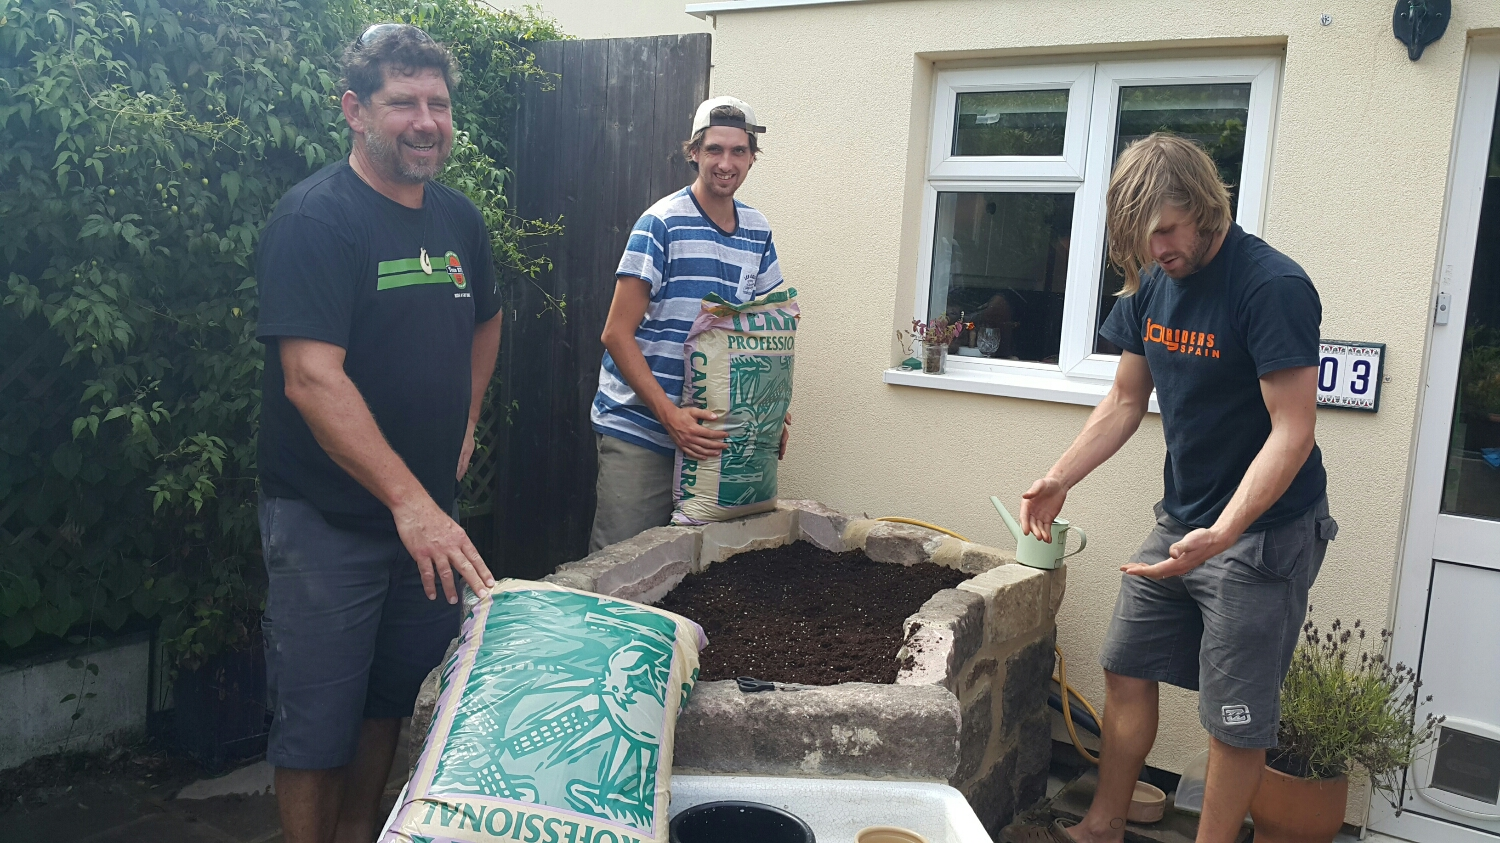 Ben doing all the Hard work filling in Wyns new Herb garden.  Pete not sure what the brown stuff is on his hands